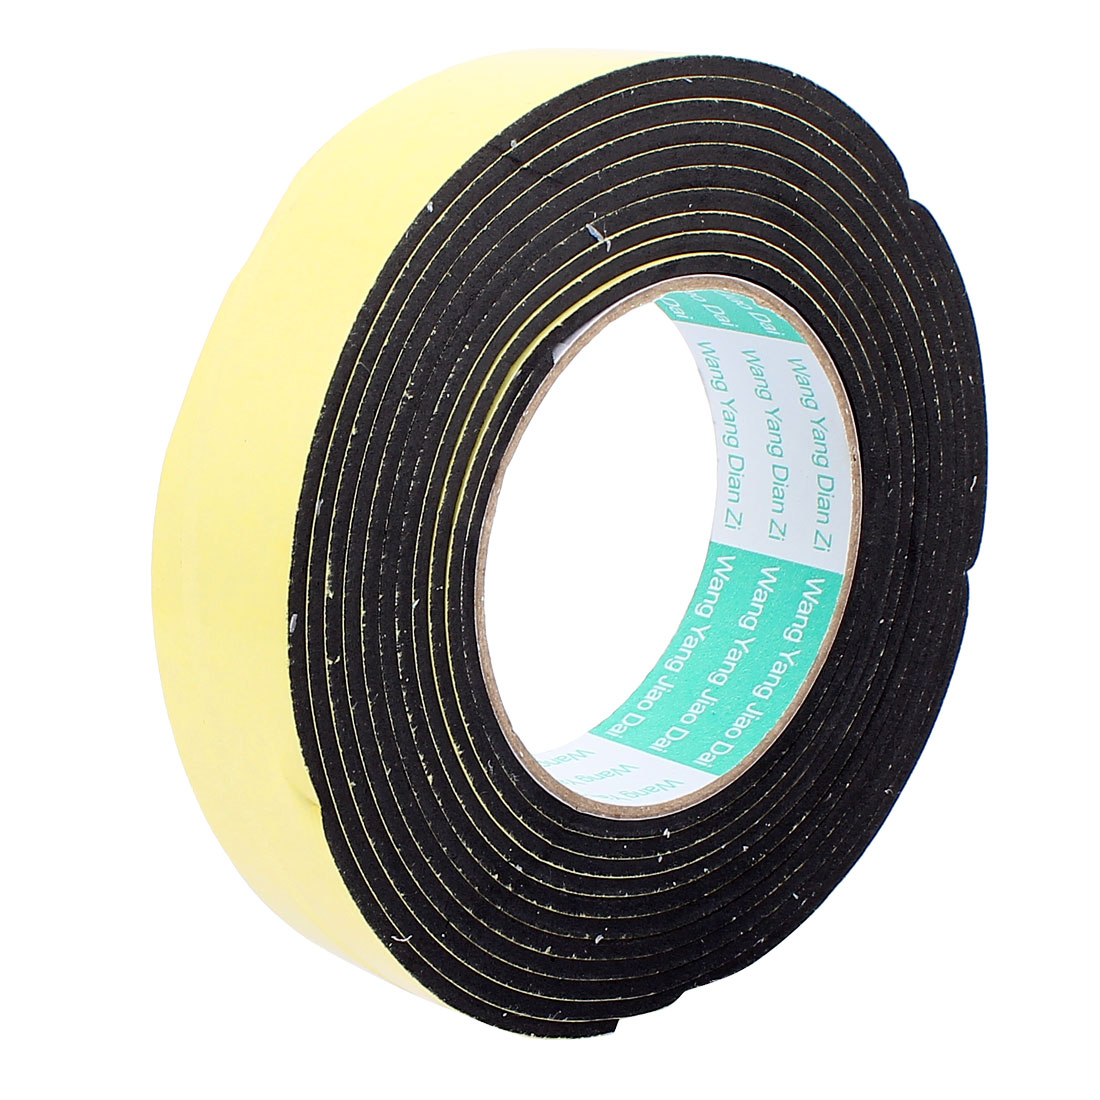 3cm Width 4 Meters Length 3mm Thick Single Sided Sealing Shockproof Sponge Tape